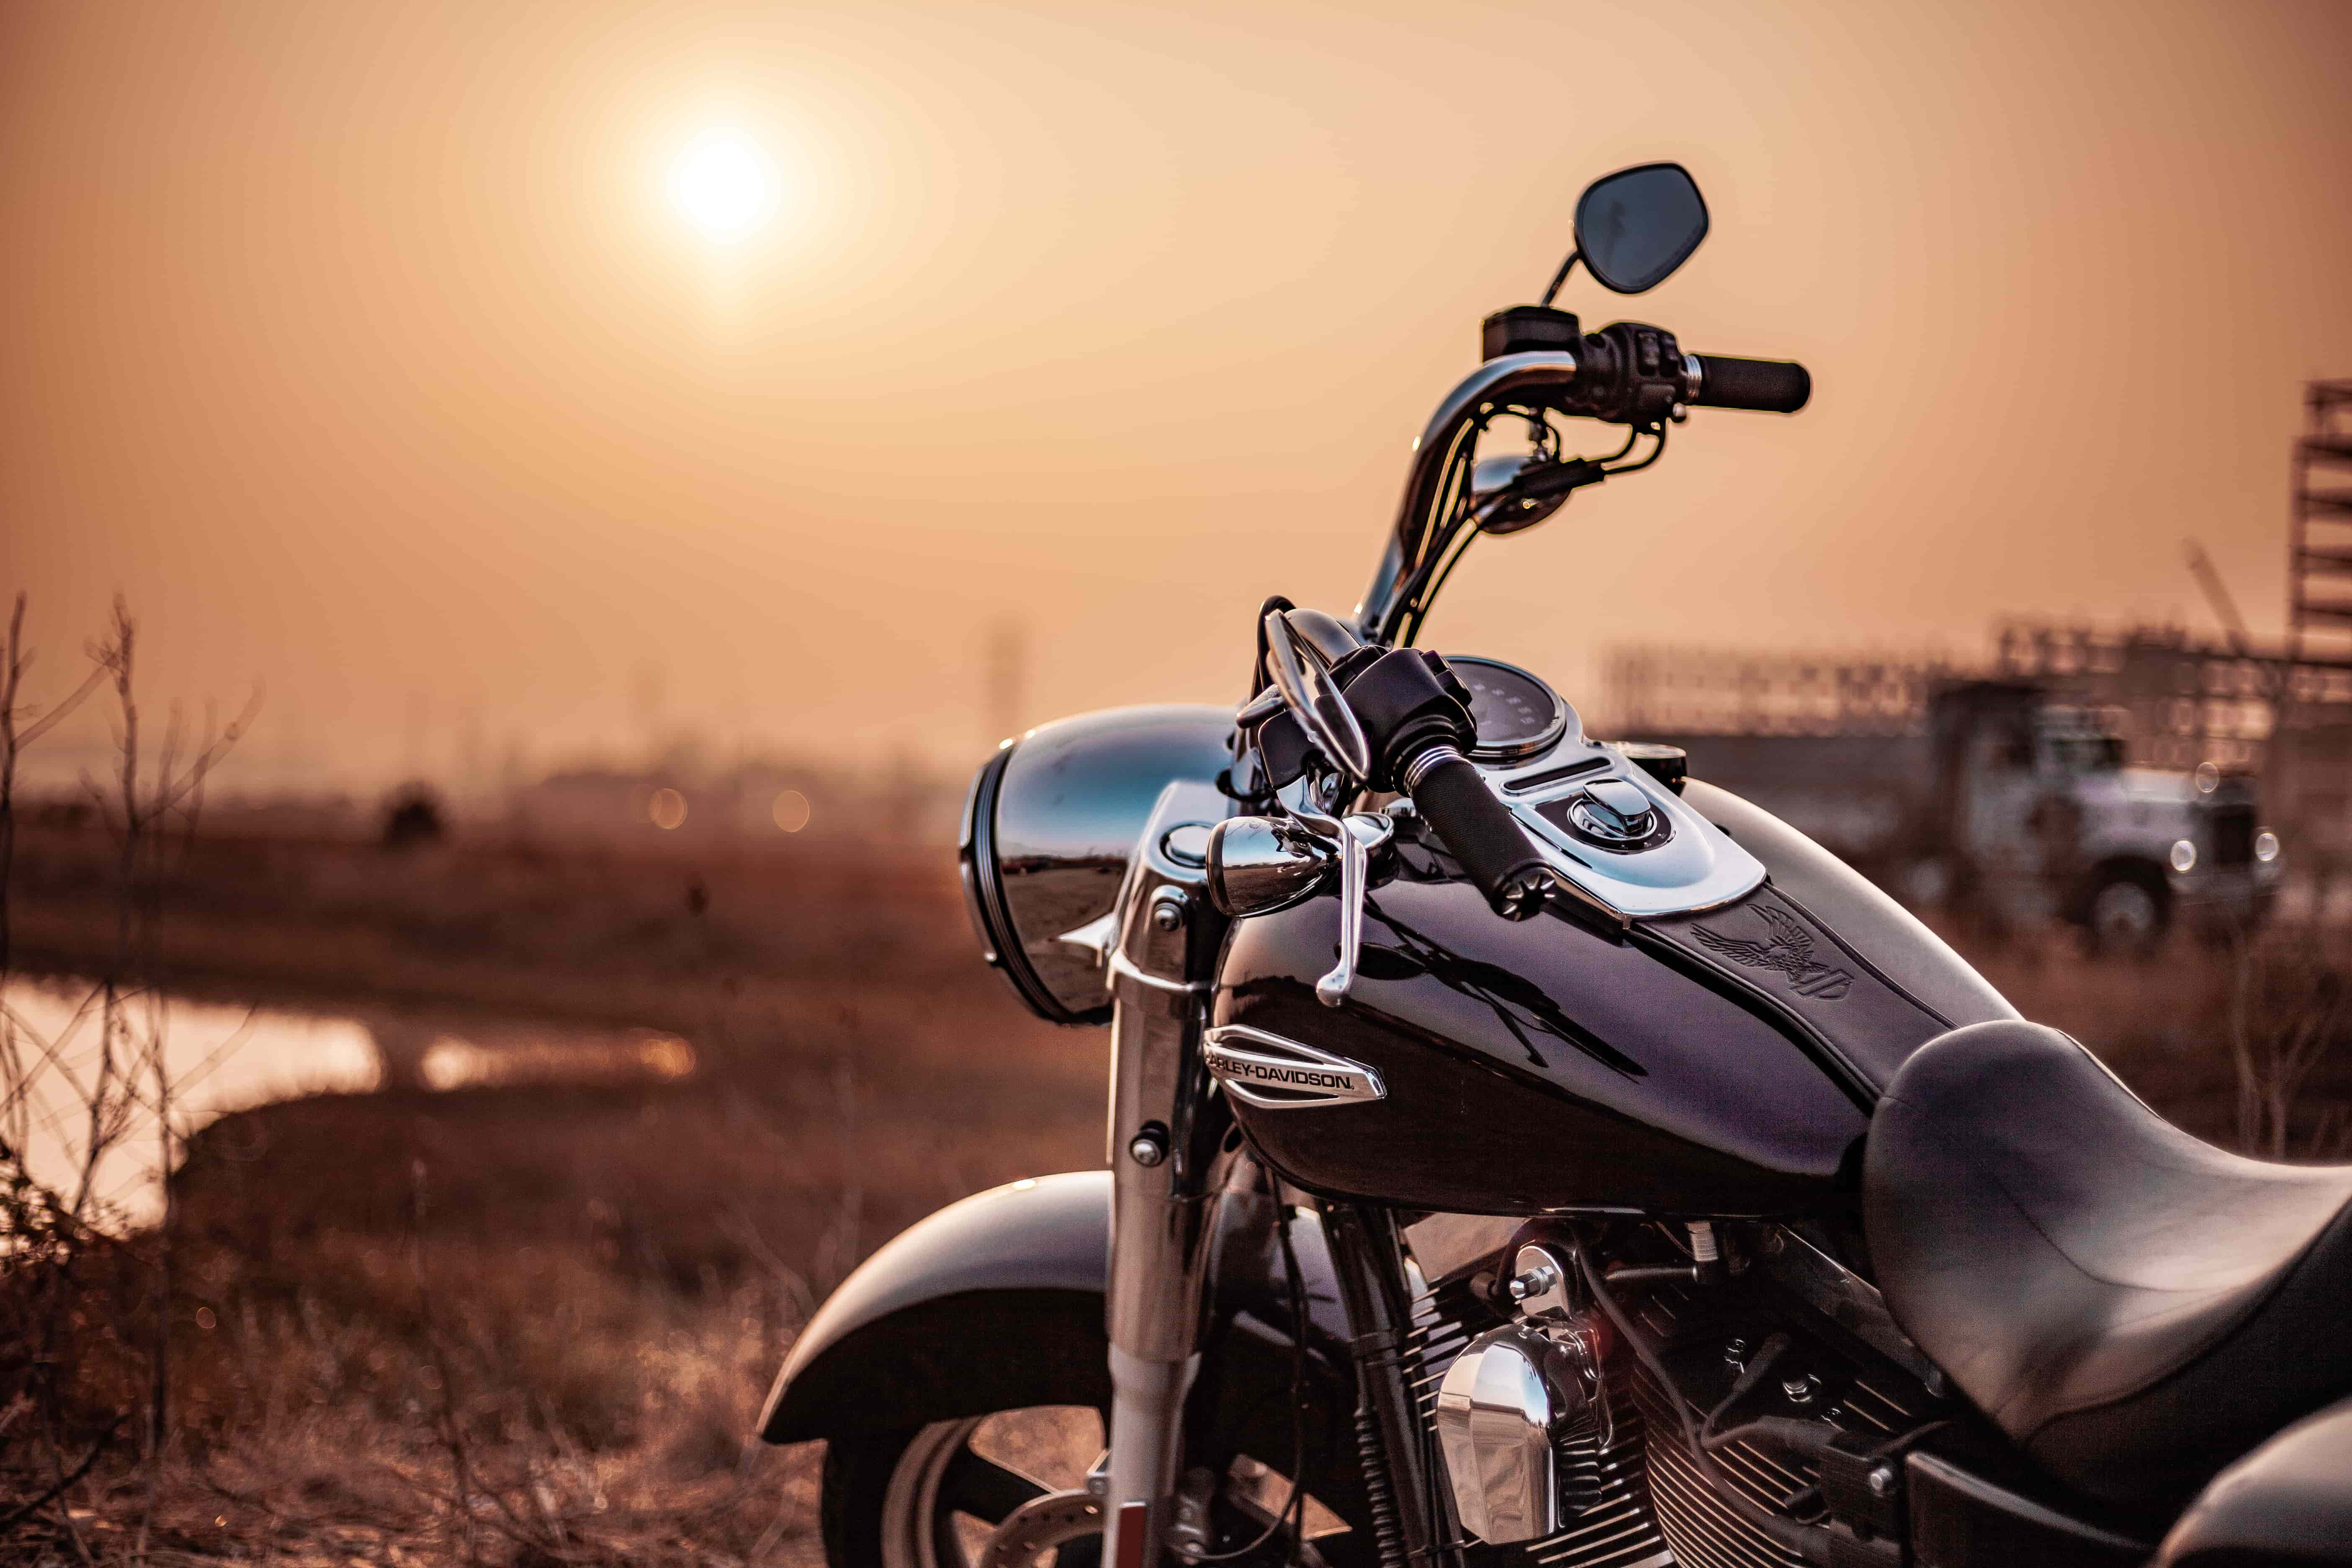 Motorcycle Theft Prevention: 4 Tips You Should Consider